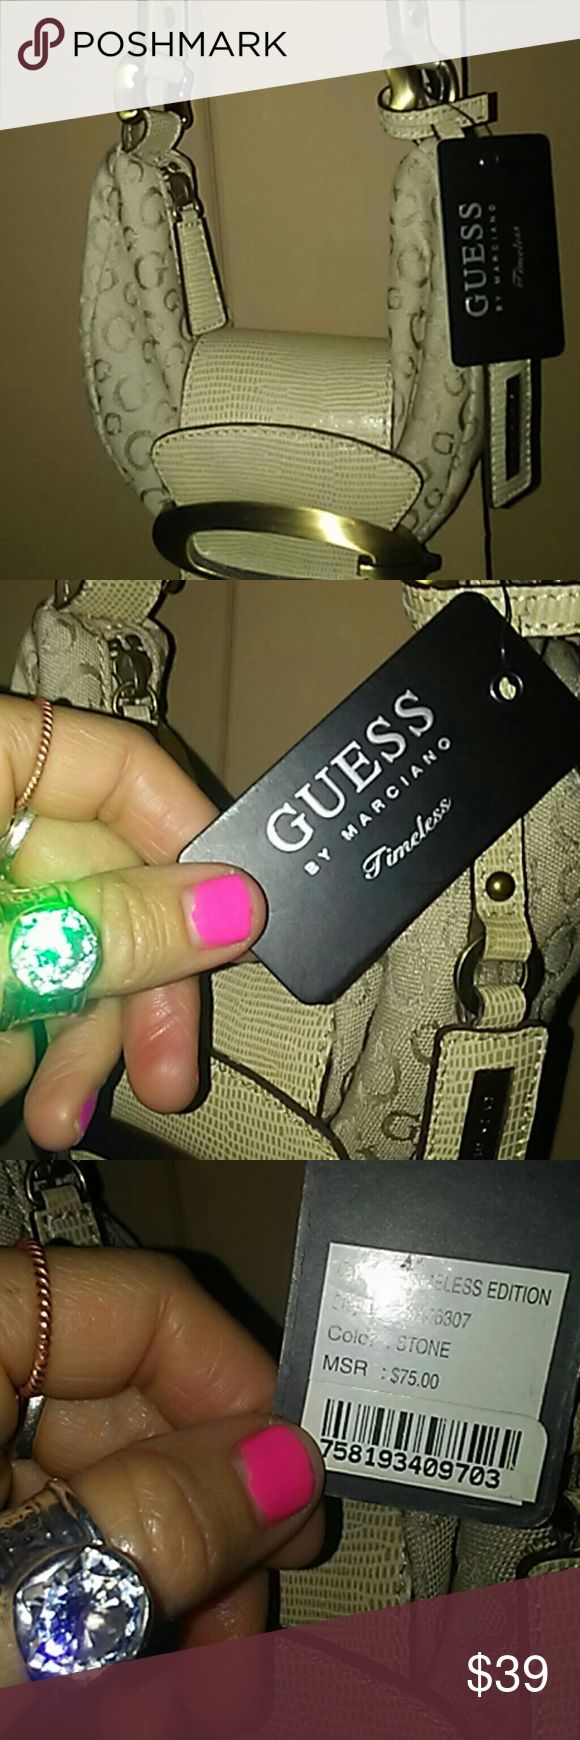 NWT Guess stone/gold logo mini shoulder bag NWT Guess stone/gold logo mini shoulder bag. Retails for $79 as shown on tag in pic #3. Guess Bags Mini Bags